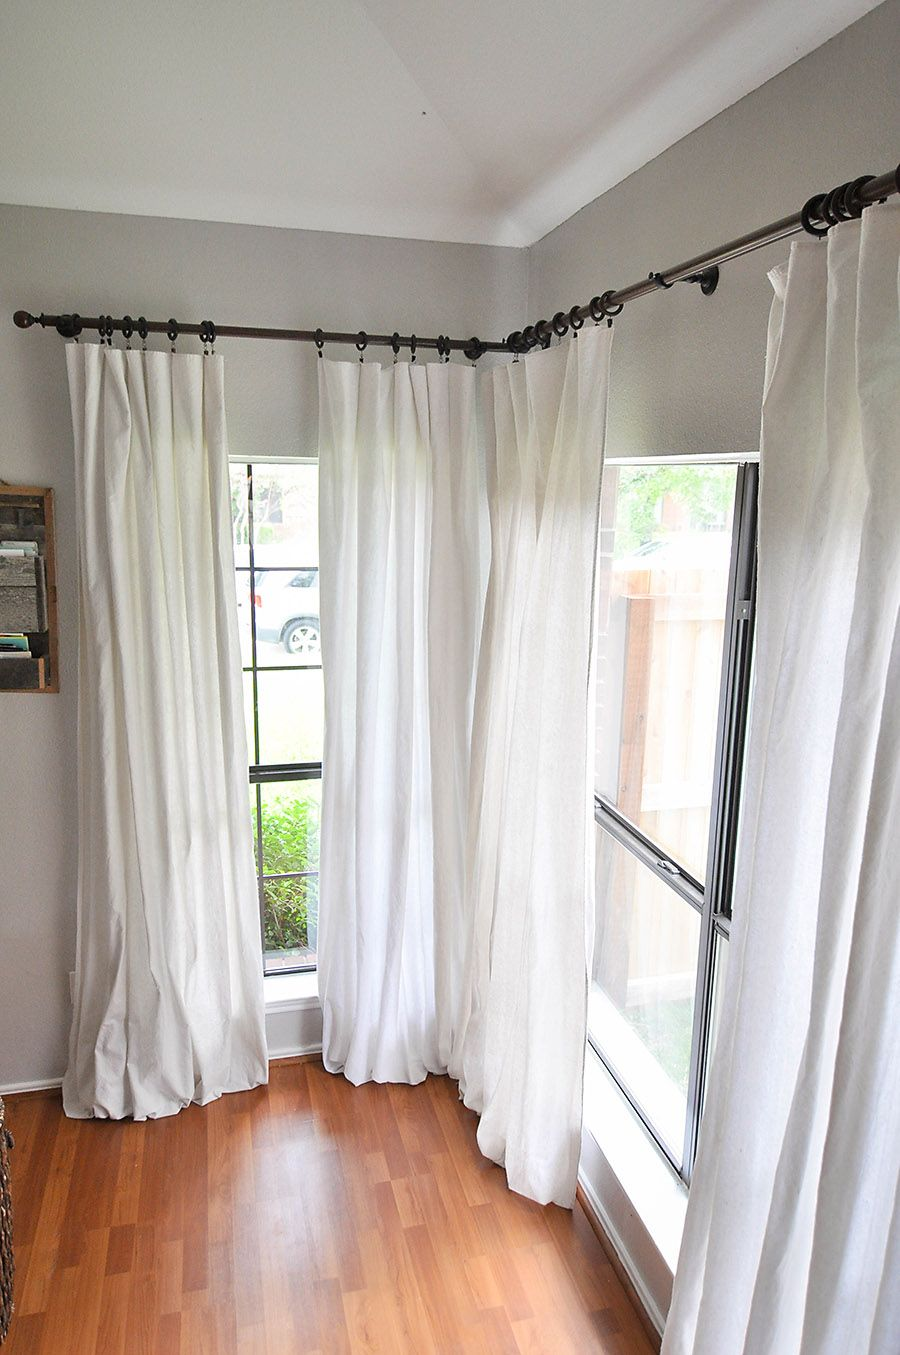 Outside window treatment ideas  how to make diy nosew bleached drop cloth curtains without making